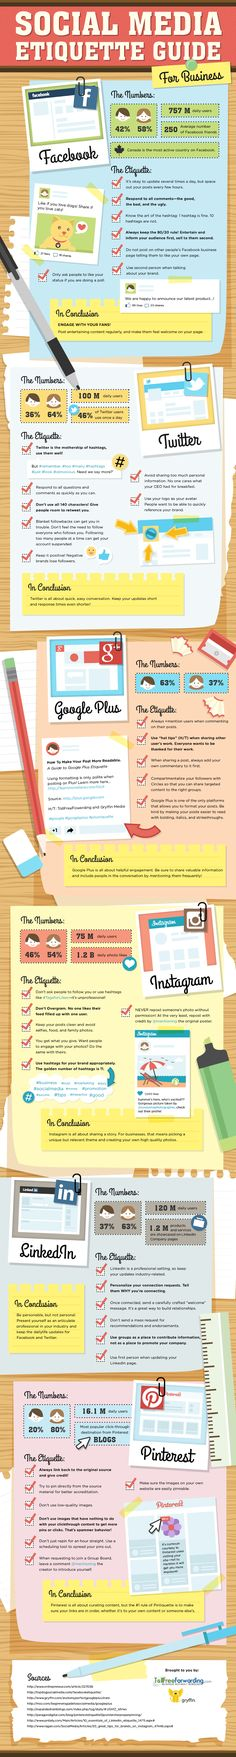 Your-Complete-Social-Media-Etiquette-Guide-for-business - via @42bis